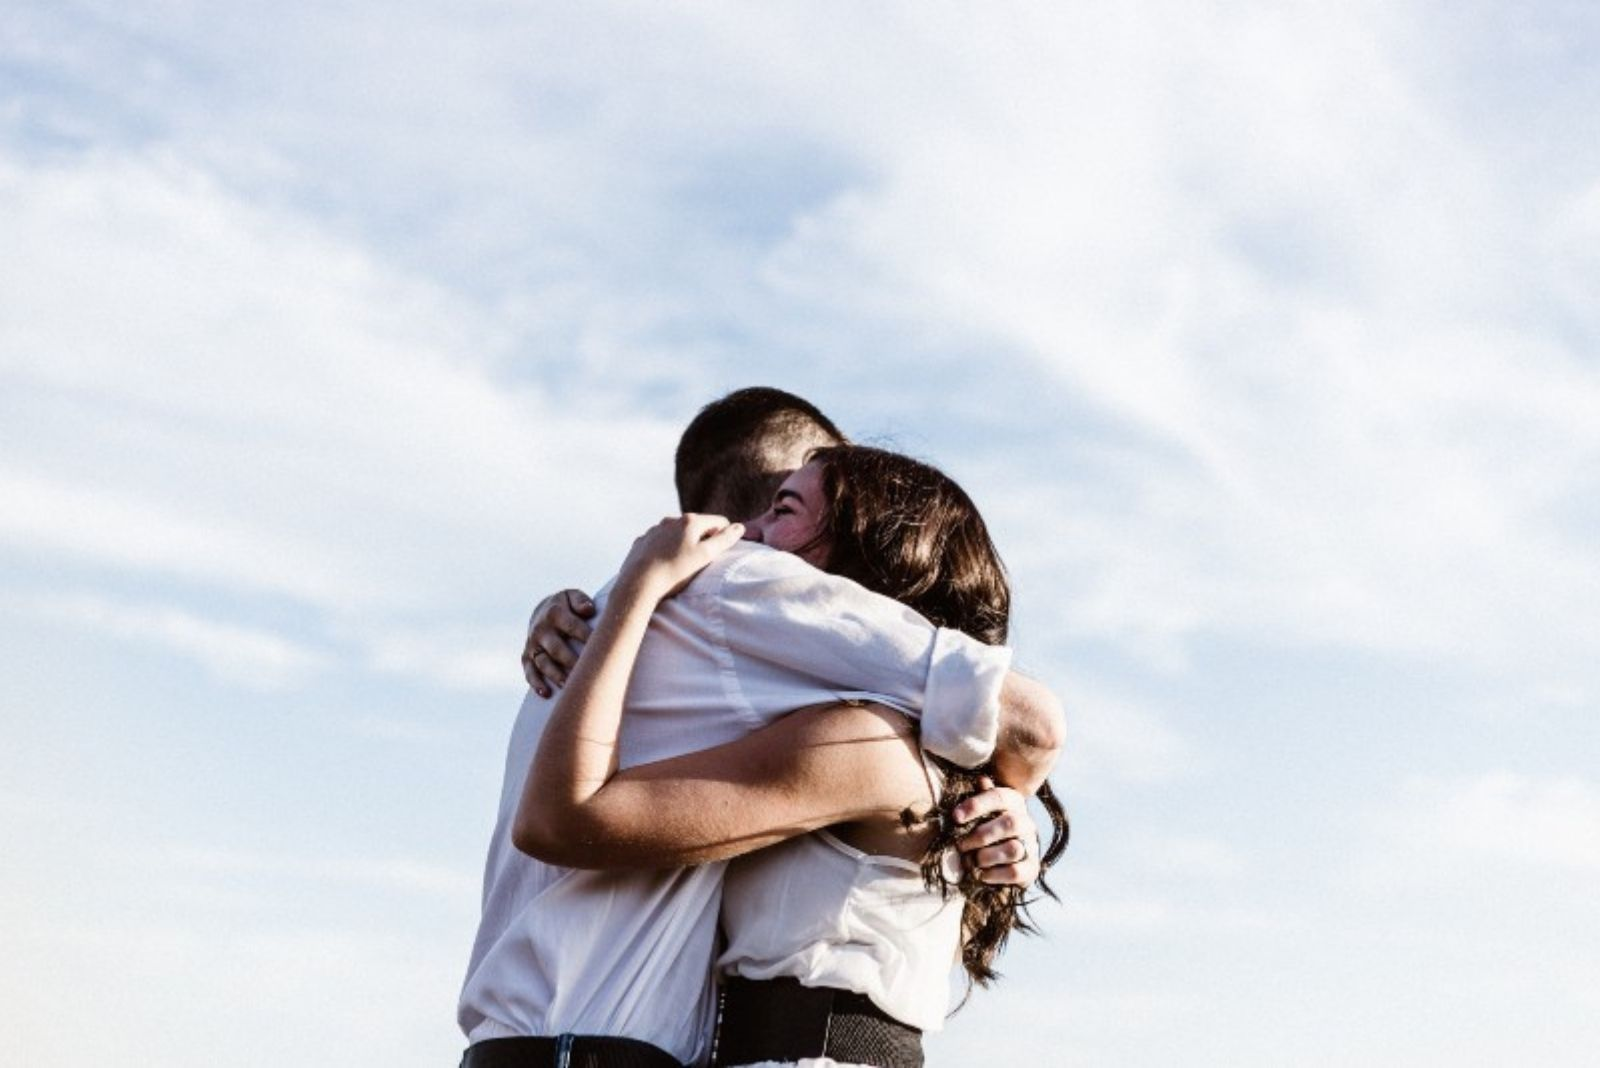 a man and a woman stand embracing